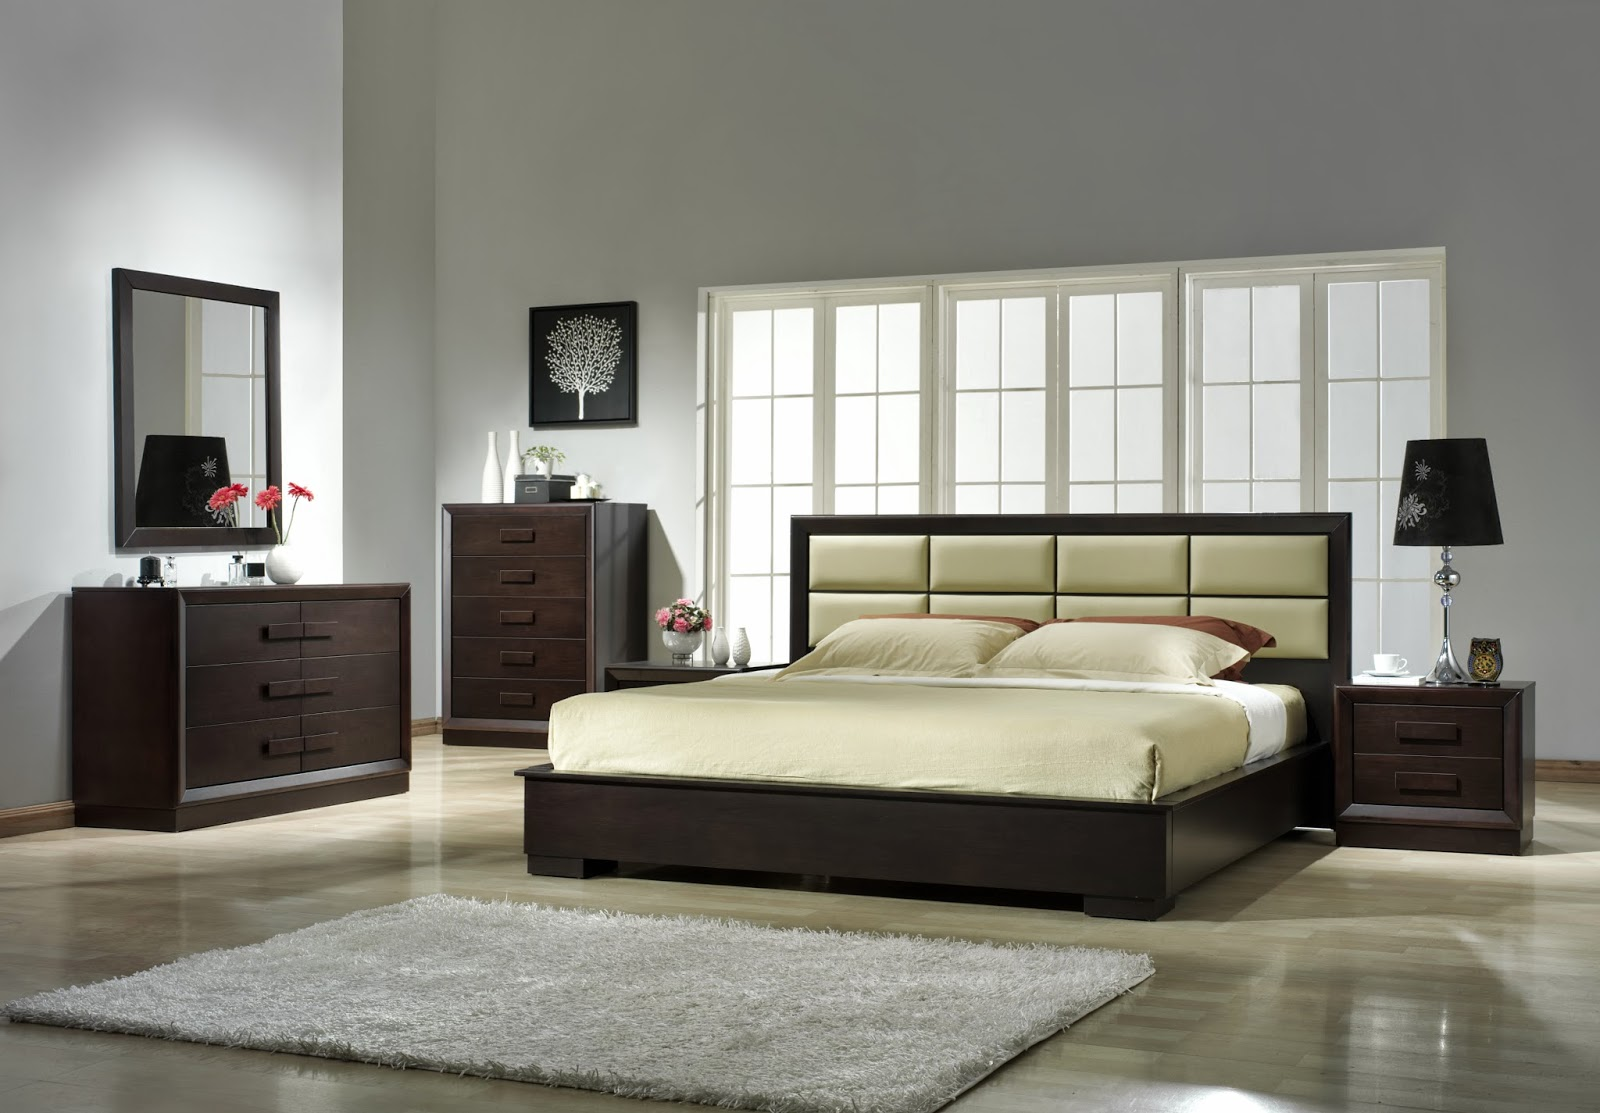 Cheapest bedroom furniture popular interior house ideas for Where to get cheap bedroom furniture